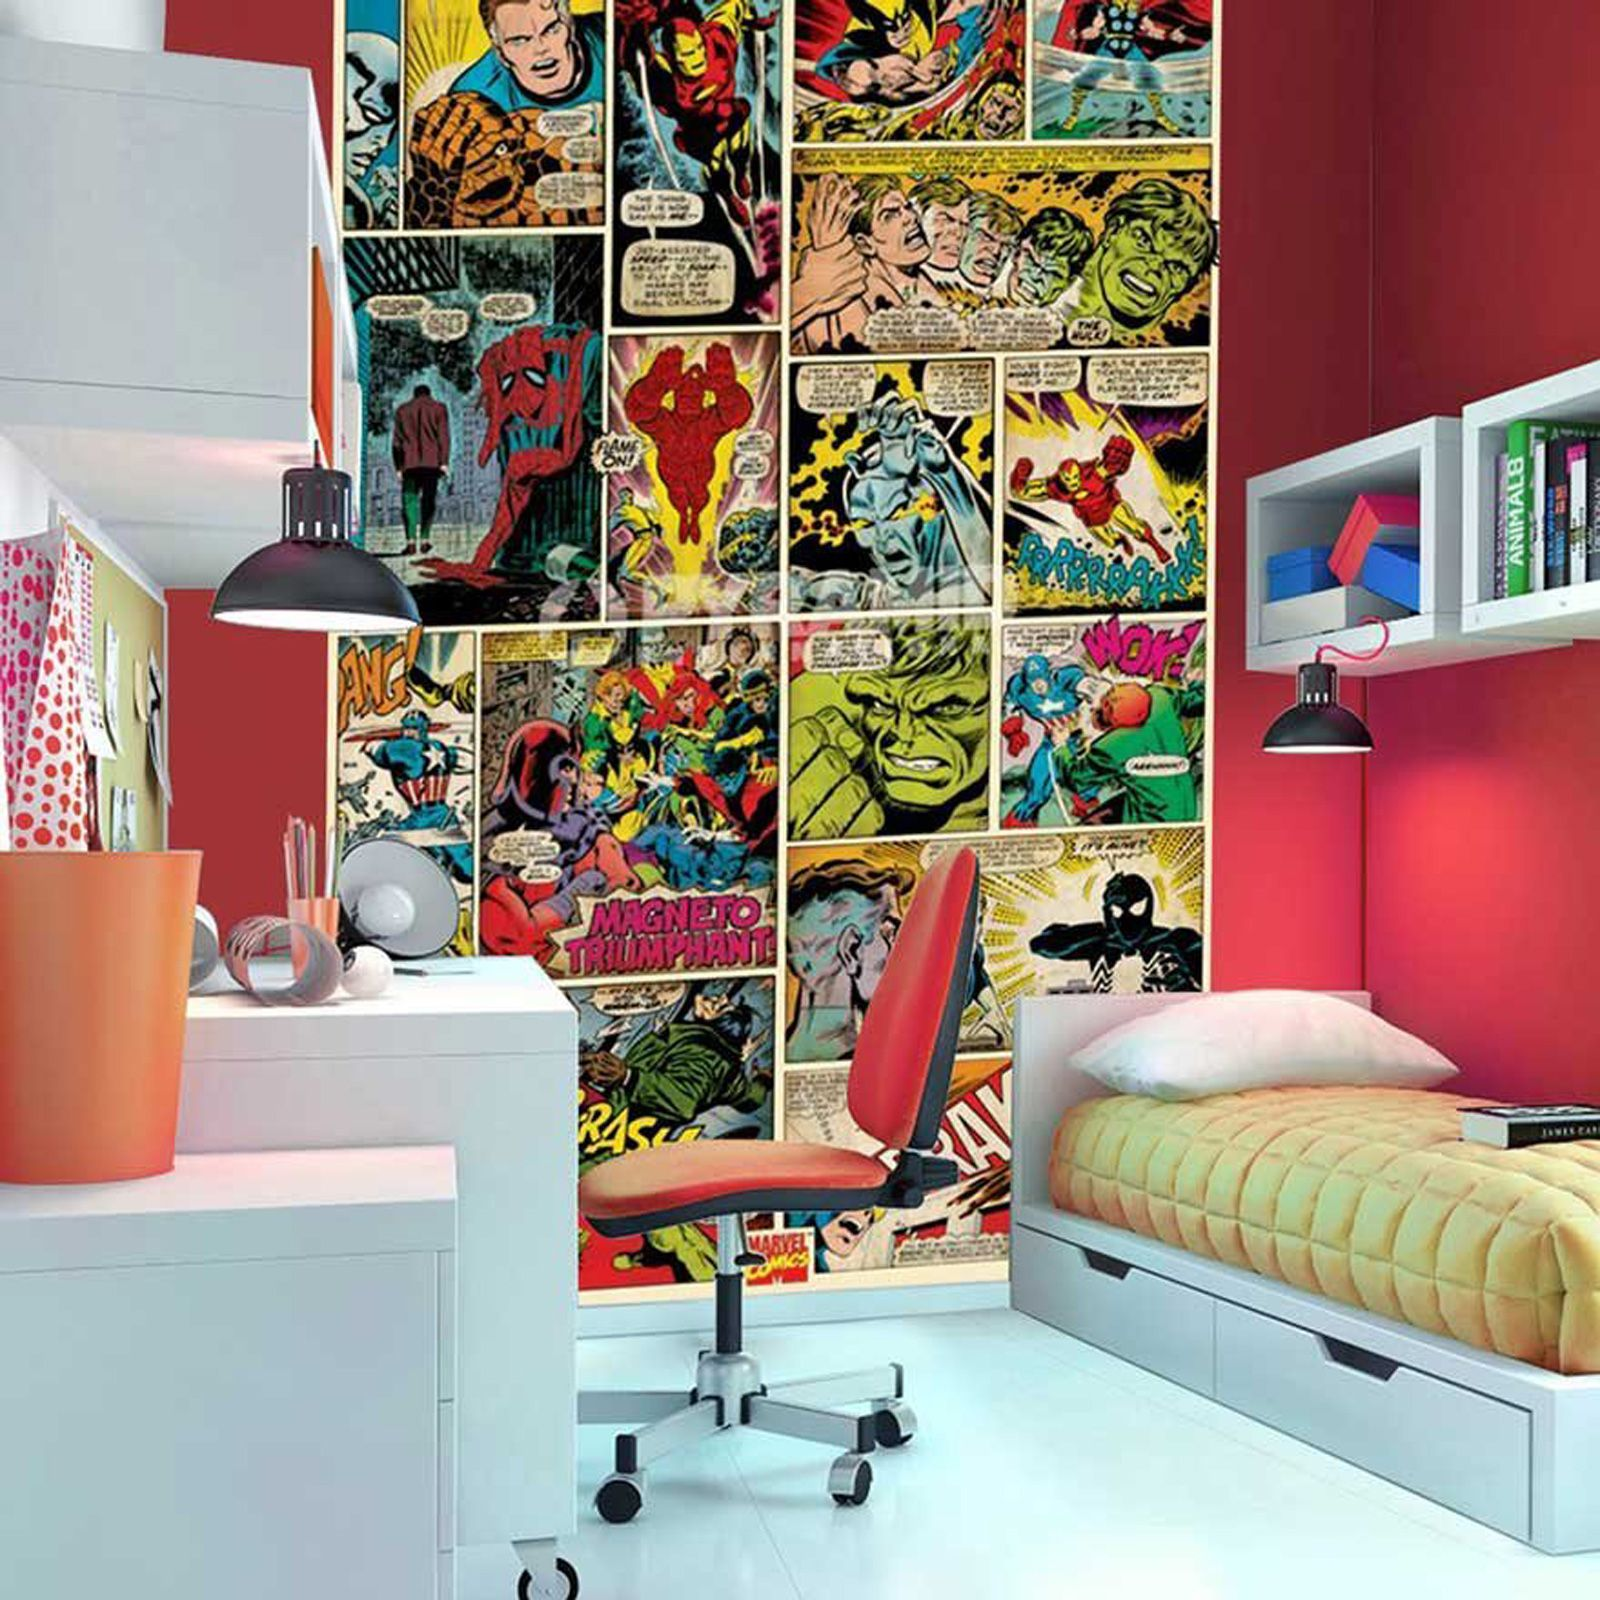 43+] Marvel Comics Wallpaper Bedroom on WallpaperSafari